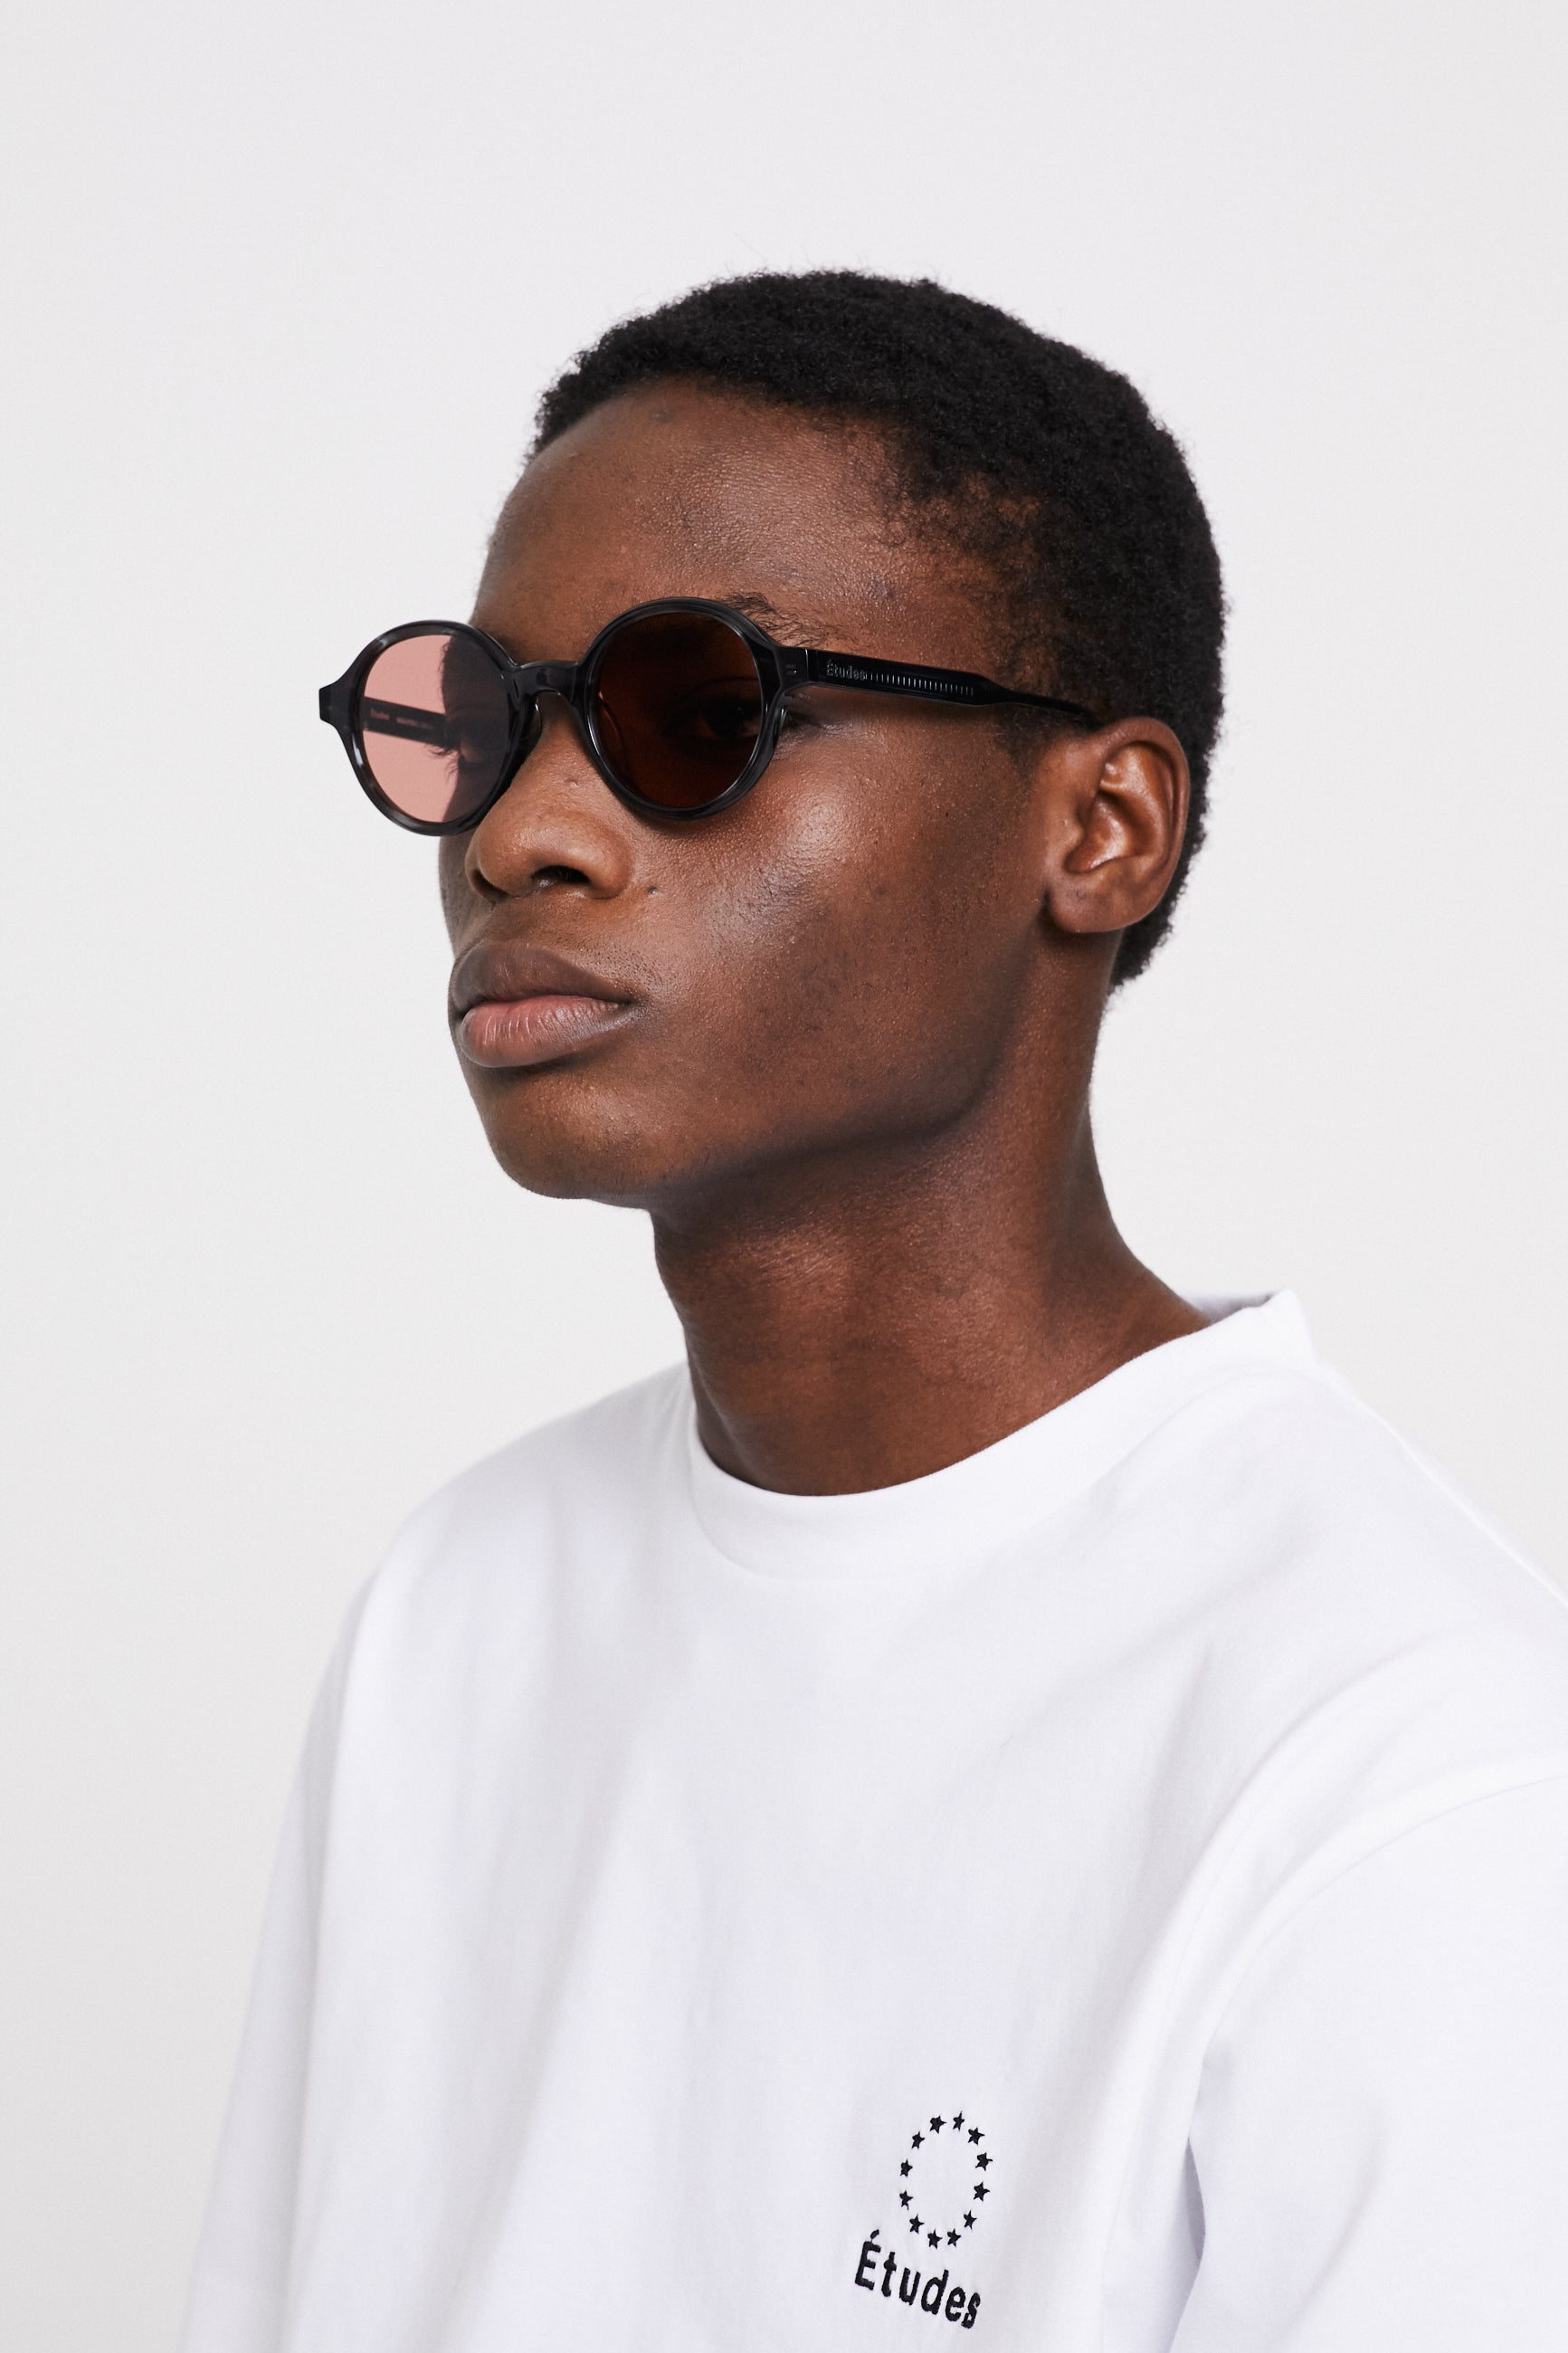 Études Bakayoko Green Sunglasses 2